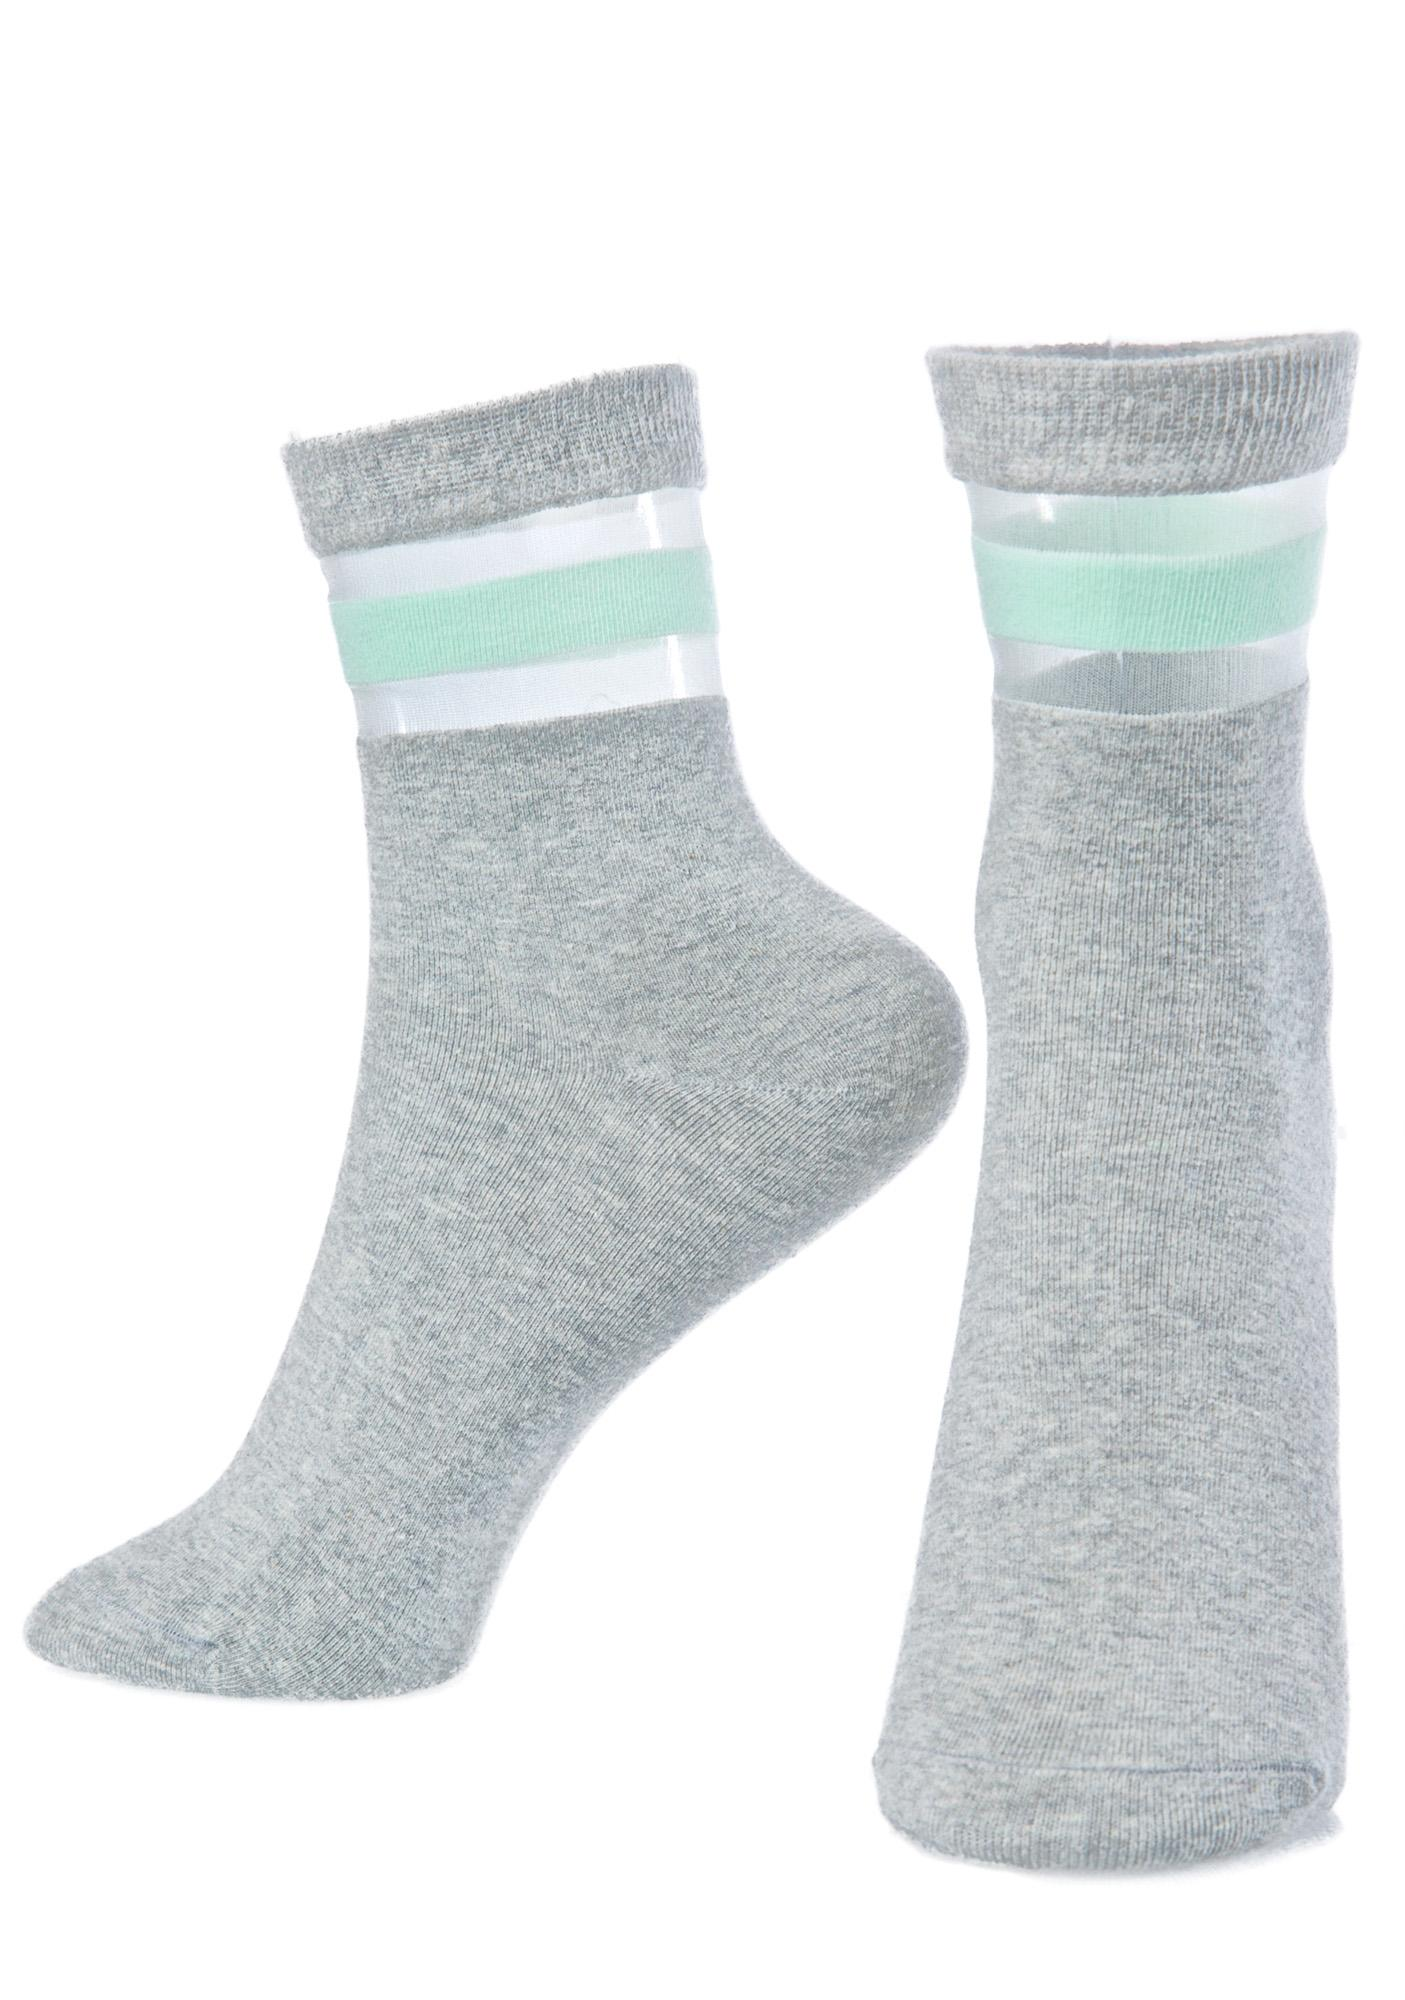 Get Physical Mint Socks